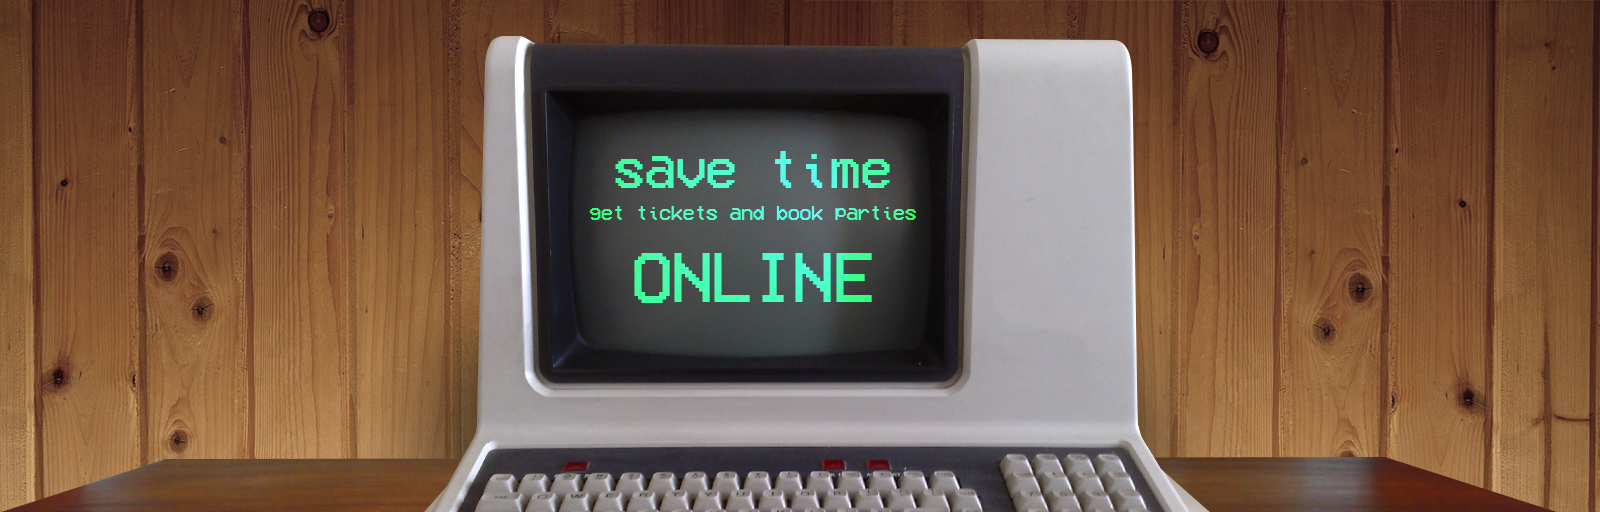 savetimebookonline